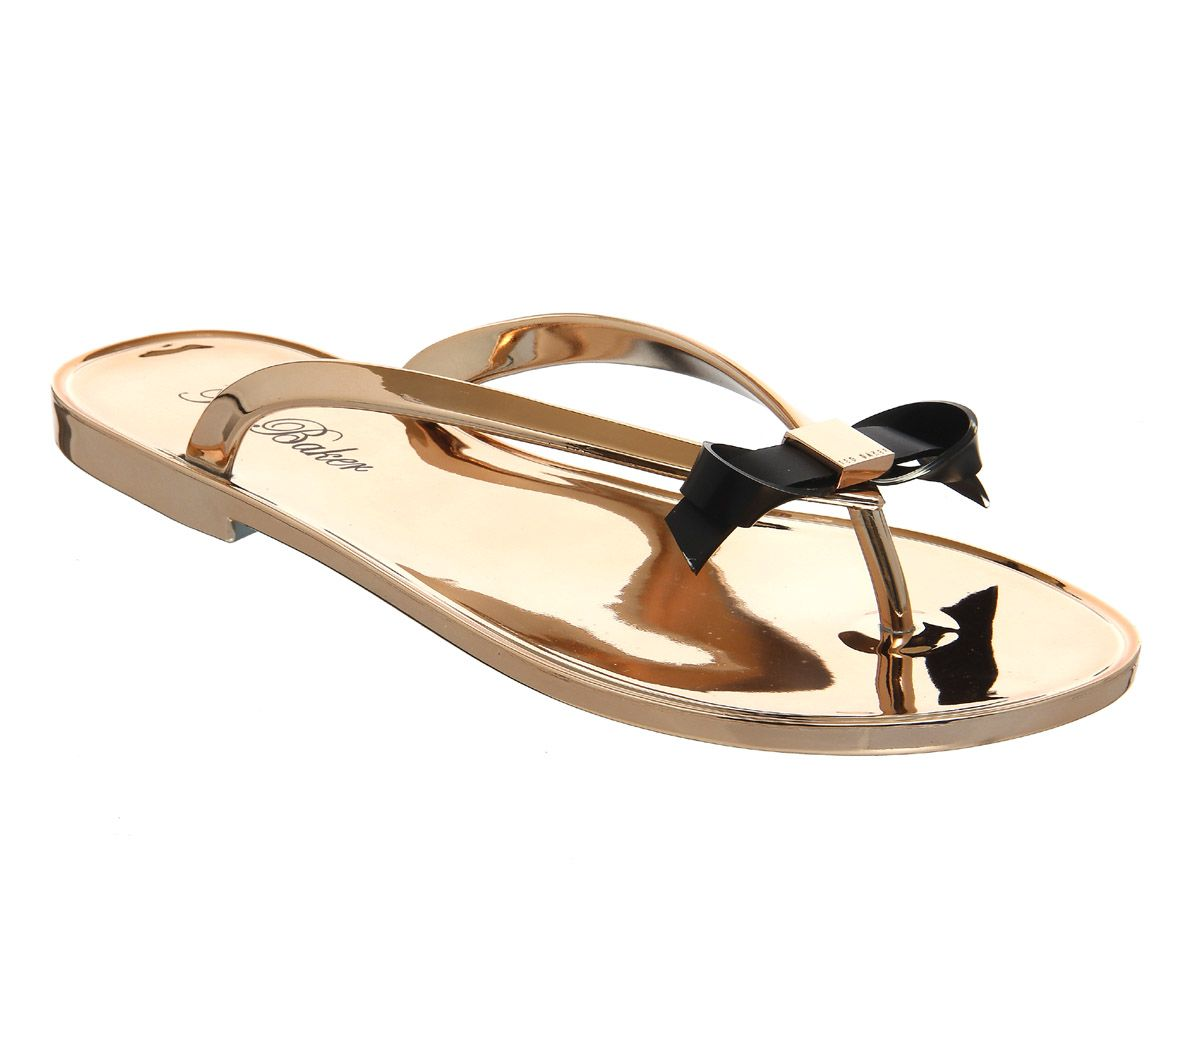 102b1db66 Buy Rose Gold Exclusive Ted Baker Heebei Sandals from OFFICE.co.uk ...